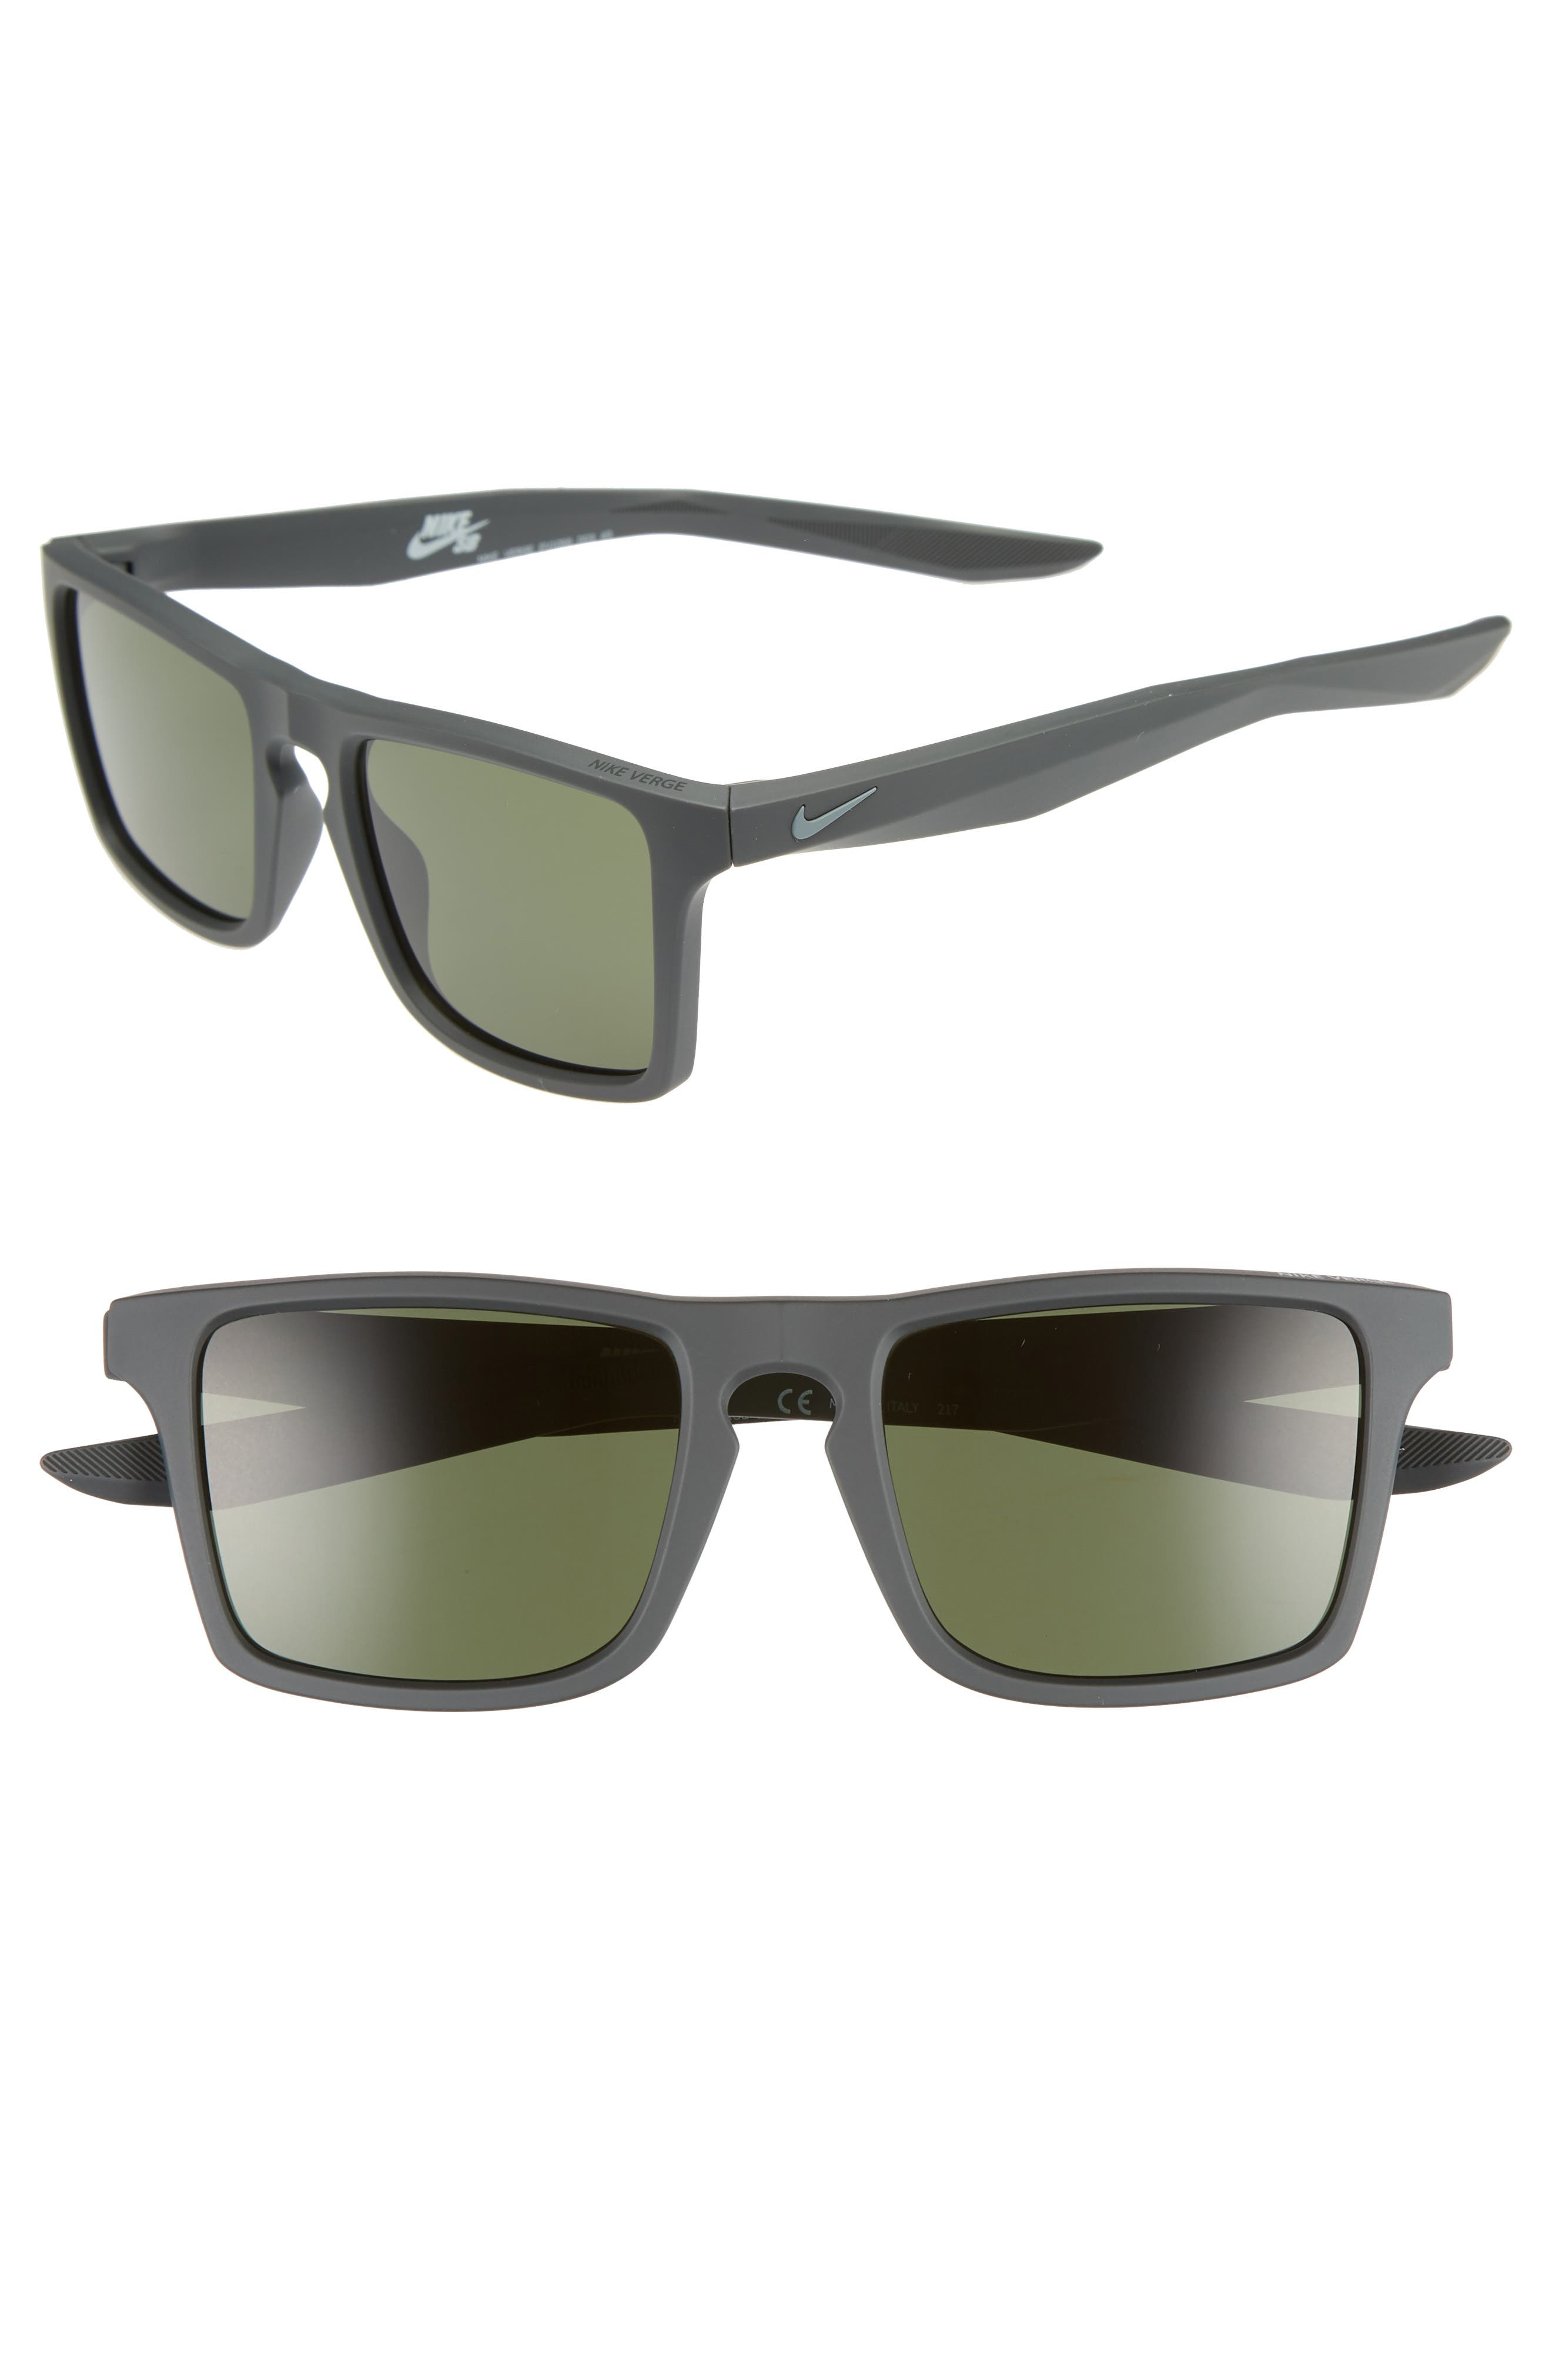 Verge 52mm Sunglasses,                             Main thumbnail 1, color,                             Anthracite/ Cool Grey/ Green